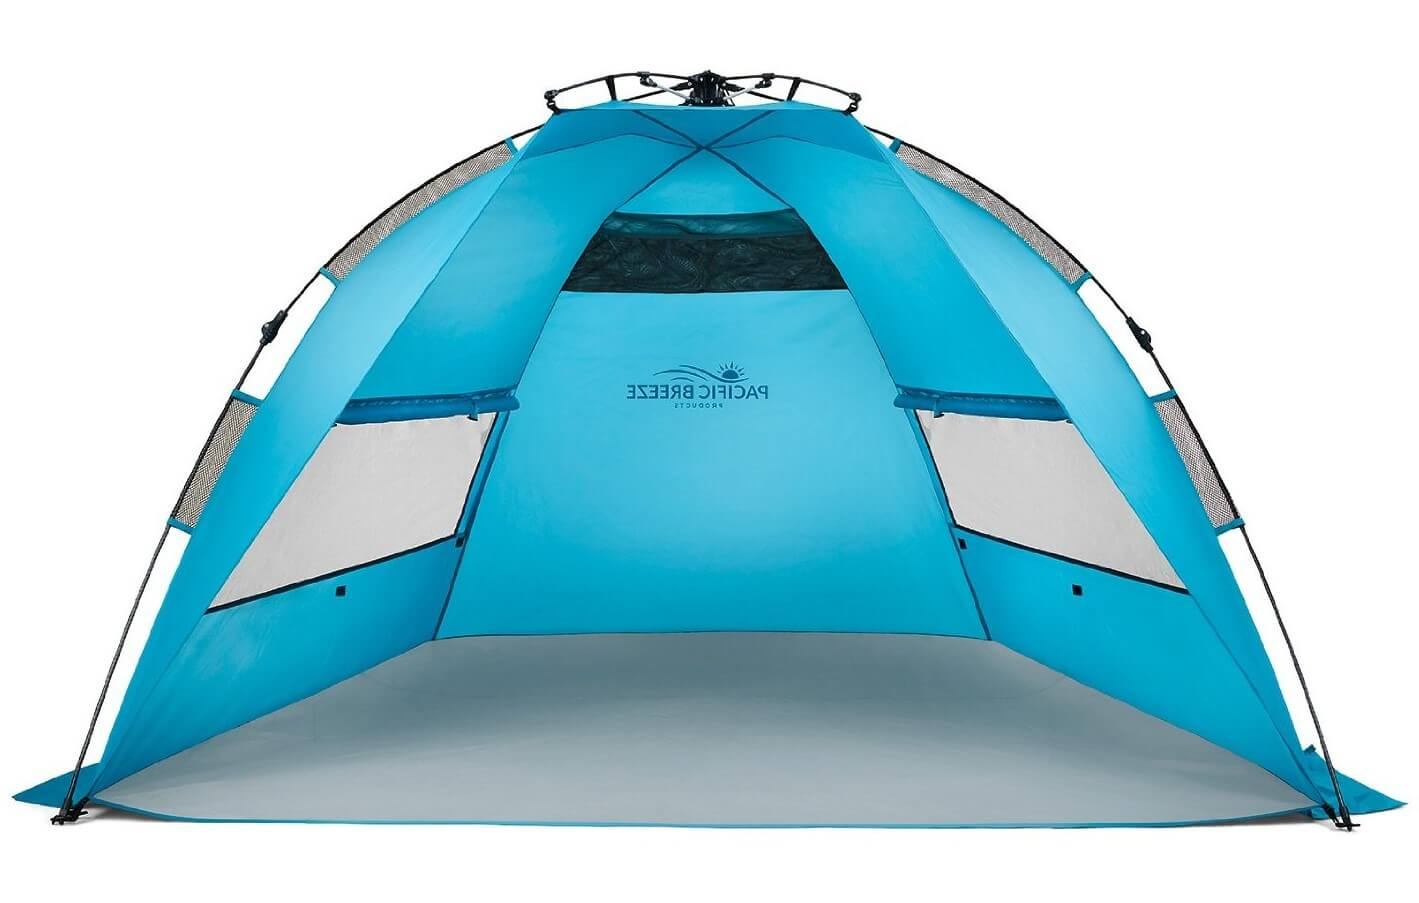 Pacific Breeze Easy Up Beach Tent  sc 1 st  Best Beach Gear & Best Beach Tent of 2018 - Reviews u0026 Ultimate Buying Guide